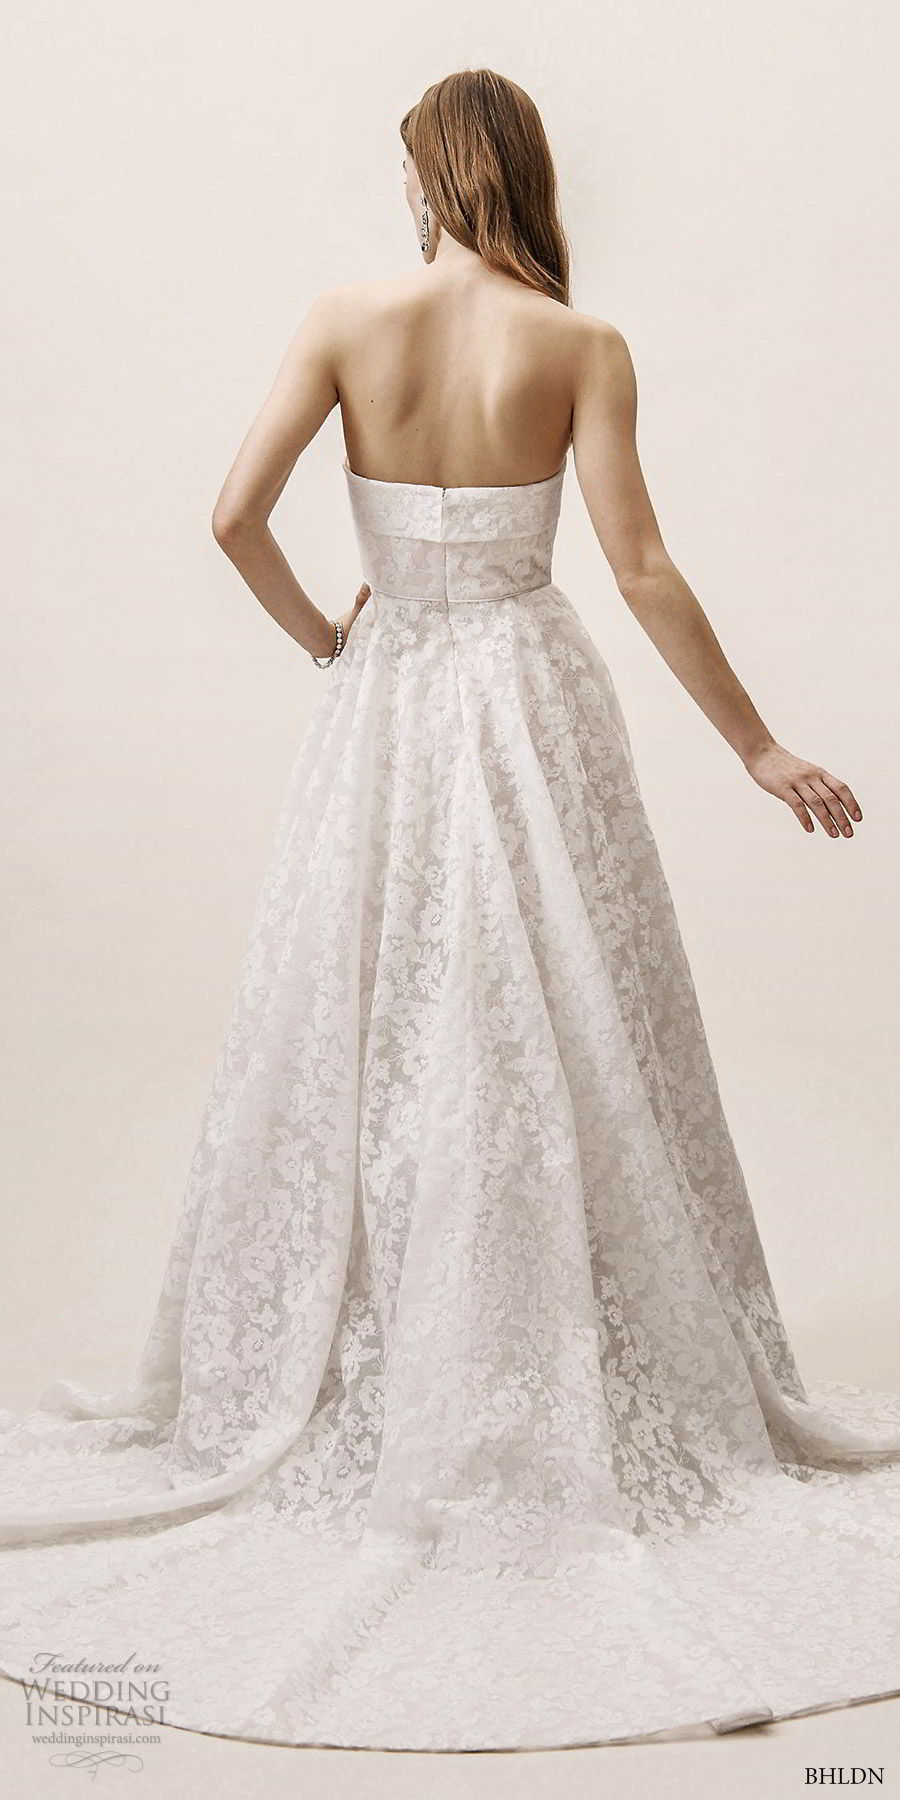 Robes de mariée de printemps 2019 de BHLDN sans effort chic